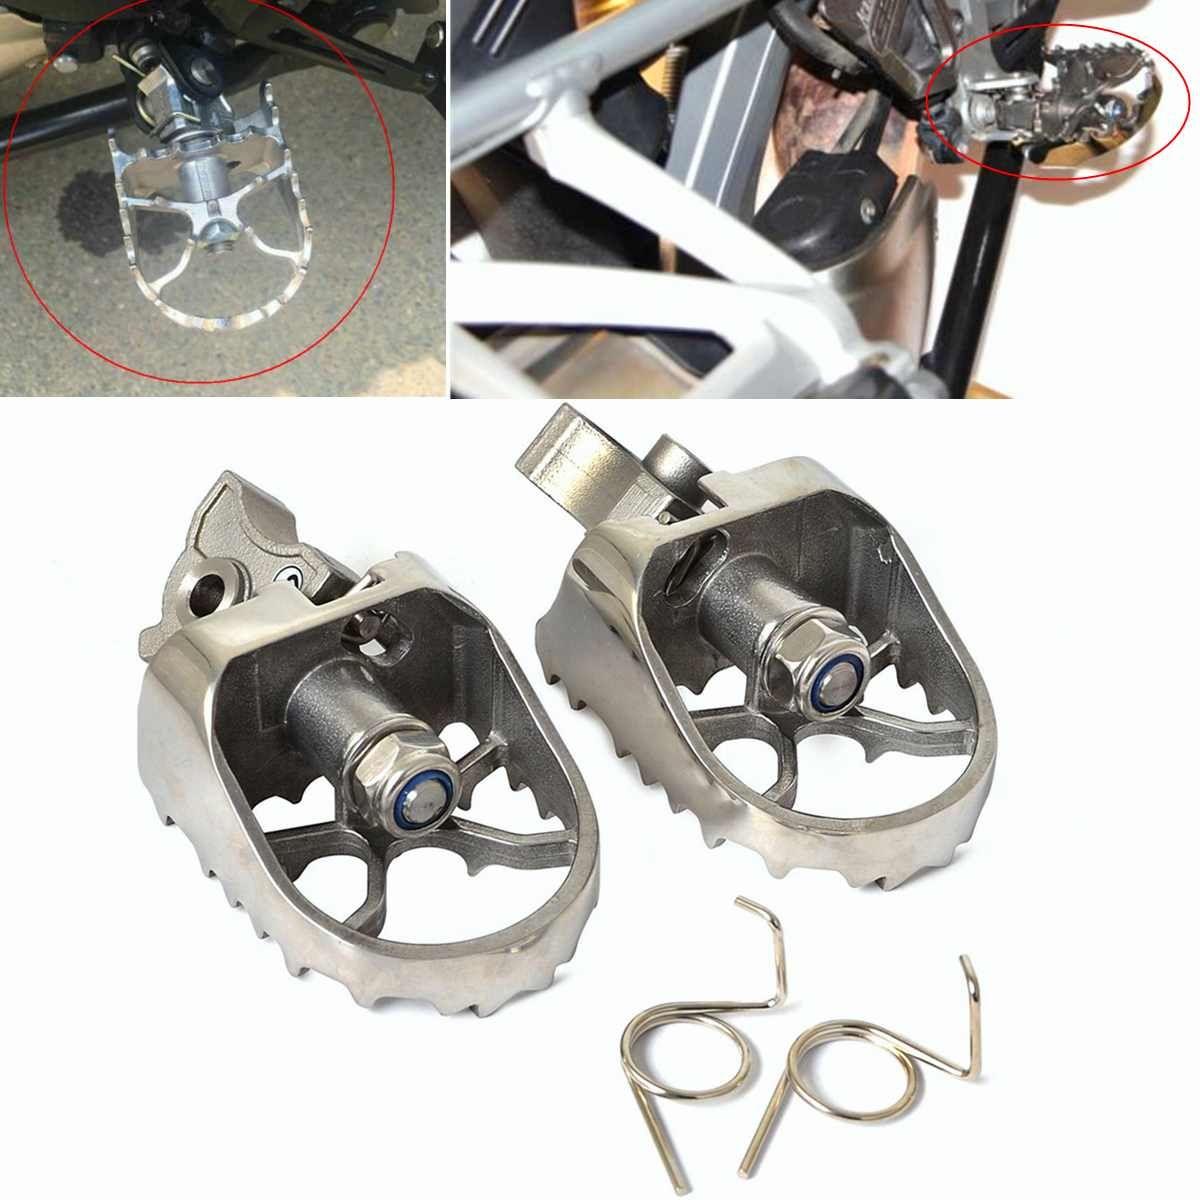 Motorcycle Accessories & Parts 2pcs Motorcycle Front Footpegs Foot Rest Peg Fit For Bmw R1200gs/adv 00-12 F650gs/g650gs 08-12 F800gs/700/650 00-05 R1150gs/adv Refreshing And Beneficial To The Eyes